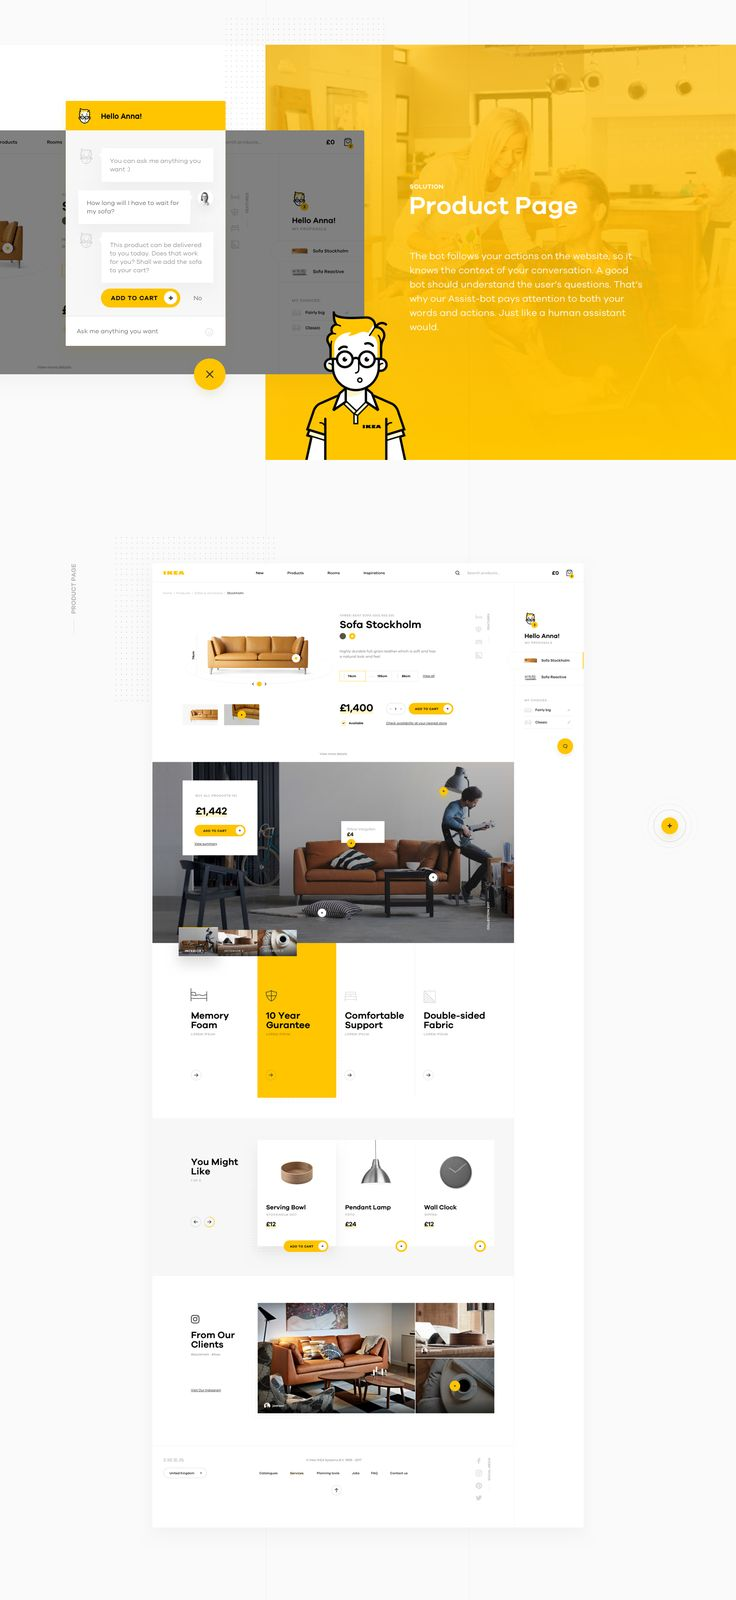 IKEA's online experience can't compare to the imaginative journey that a trip through one of their offline stores always turns into. Why? Because it lacks that spark of magic and human touch. We totally overhauled IKEA's online store experience and we thi…